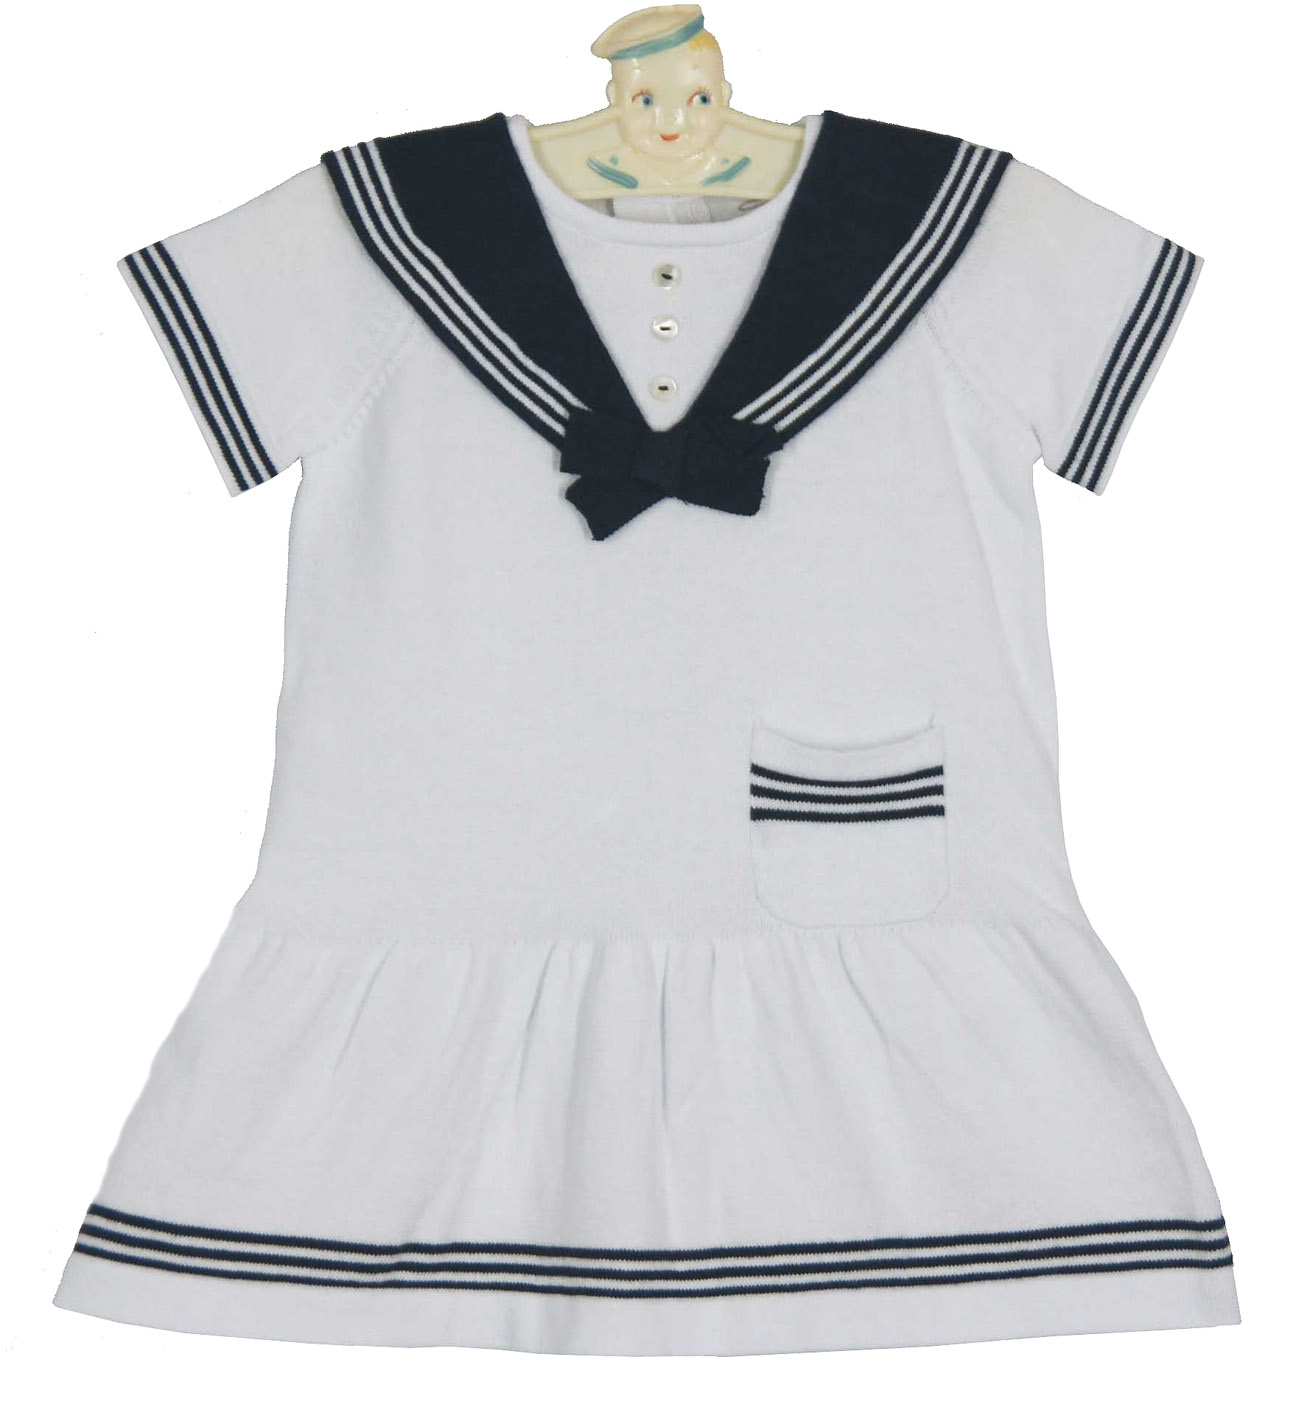 a36cf5438 NEW Sarah Louise White Cotton Knit Sailor Dress with Navy Trim